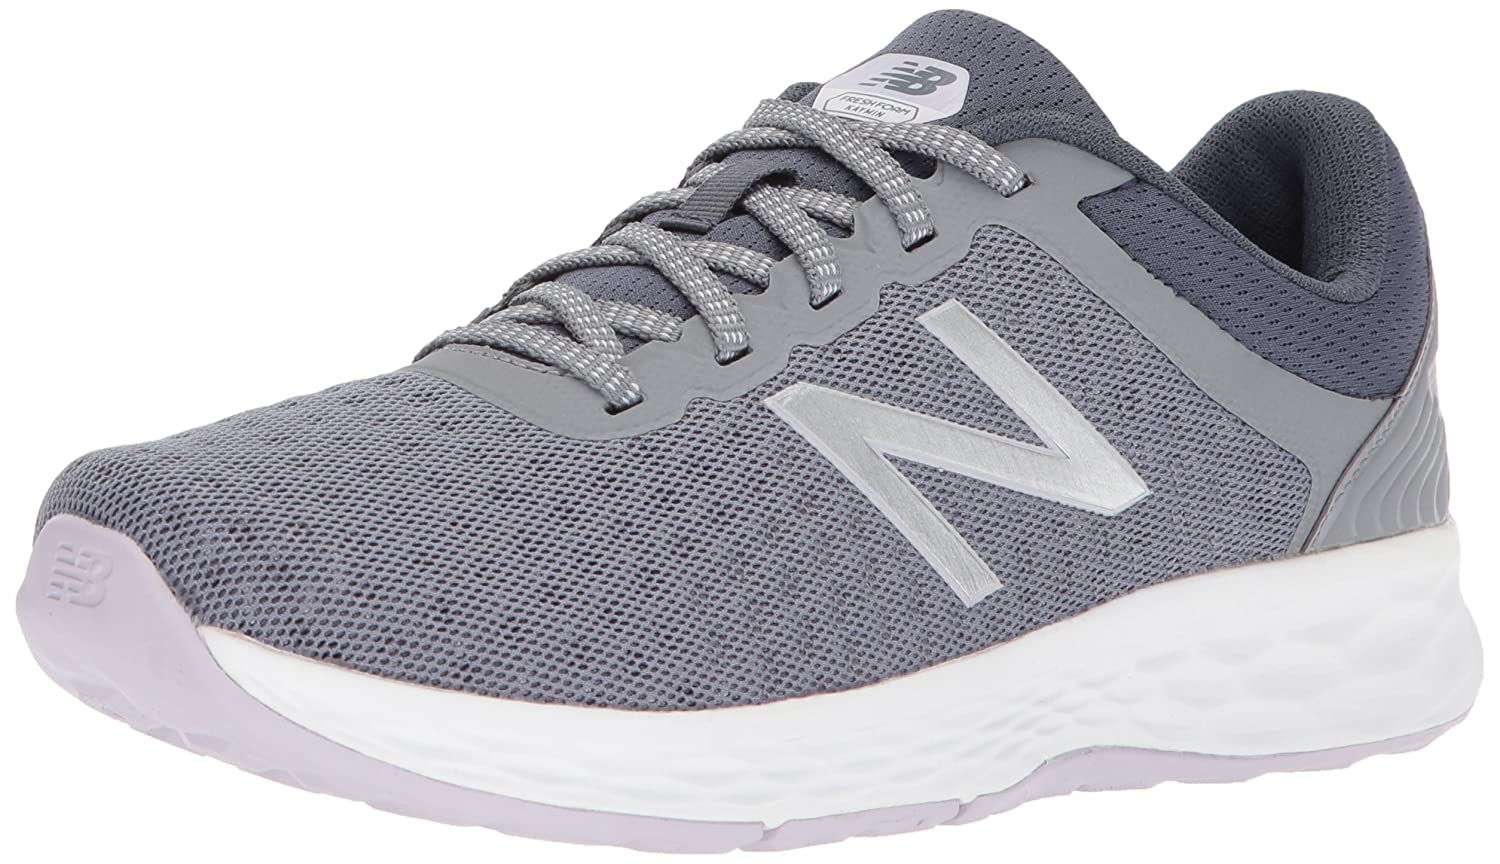 New Balance Women's Fresh Foam Kaymin v1 Running Shoe B06XS68KDG 55 D US|Gunmetal/Thunder